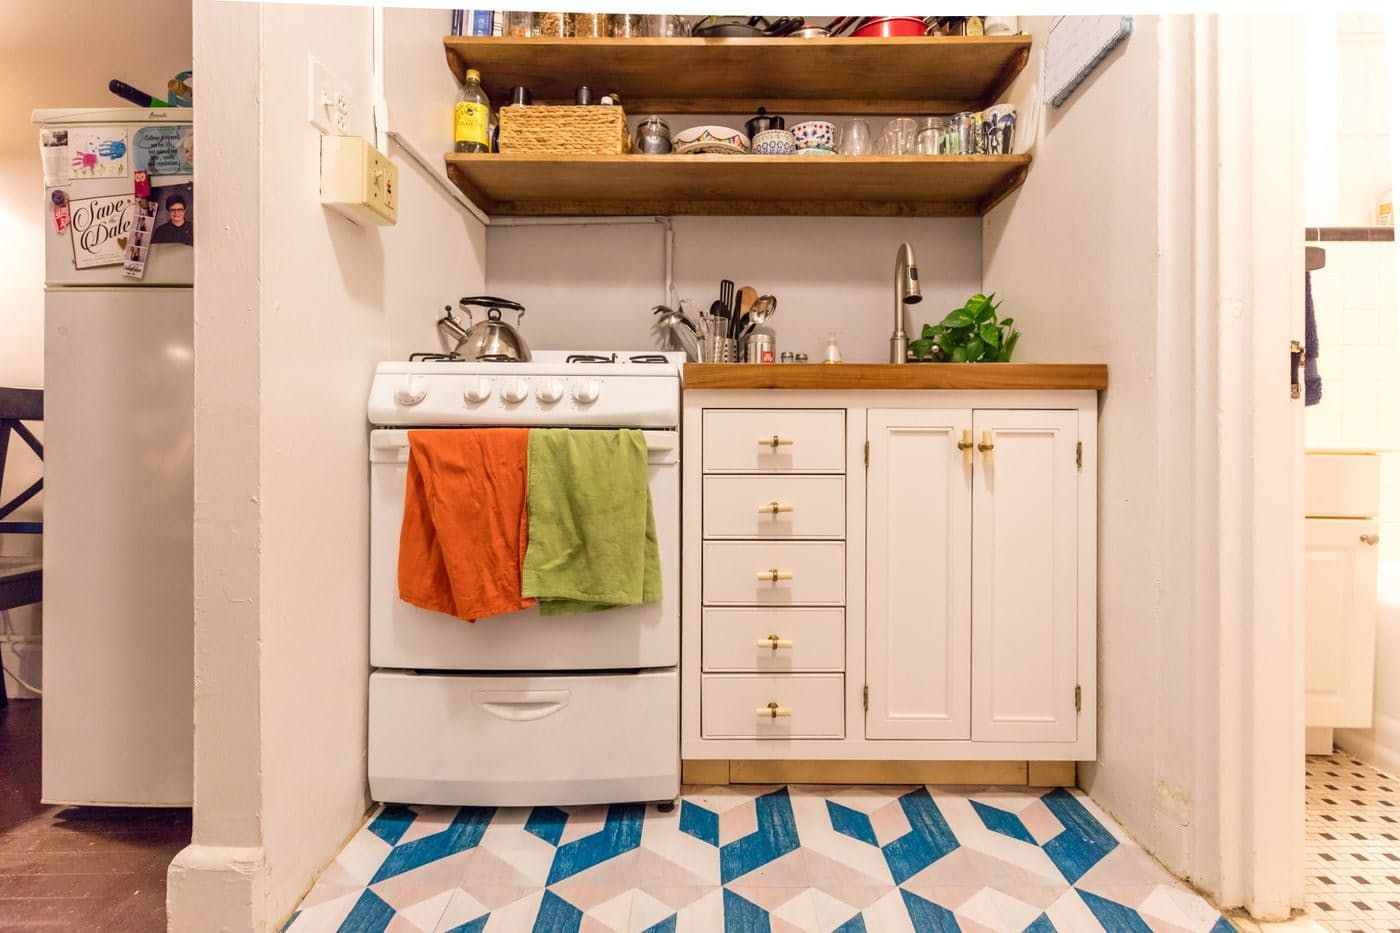 Can You Spot The Ingenious Storage Space In This Kitchen Rental